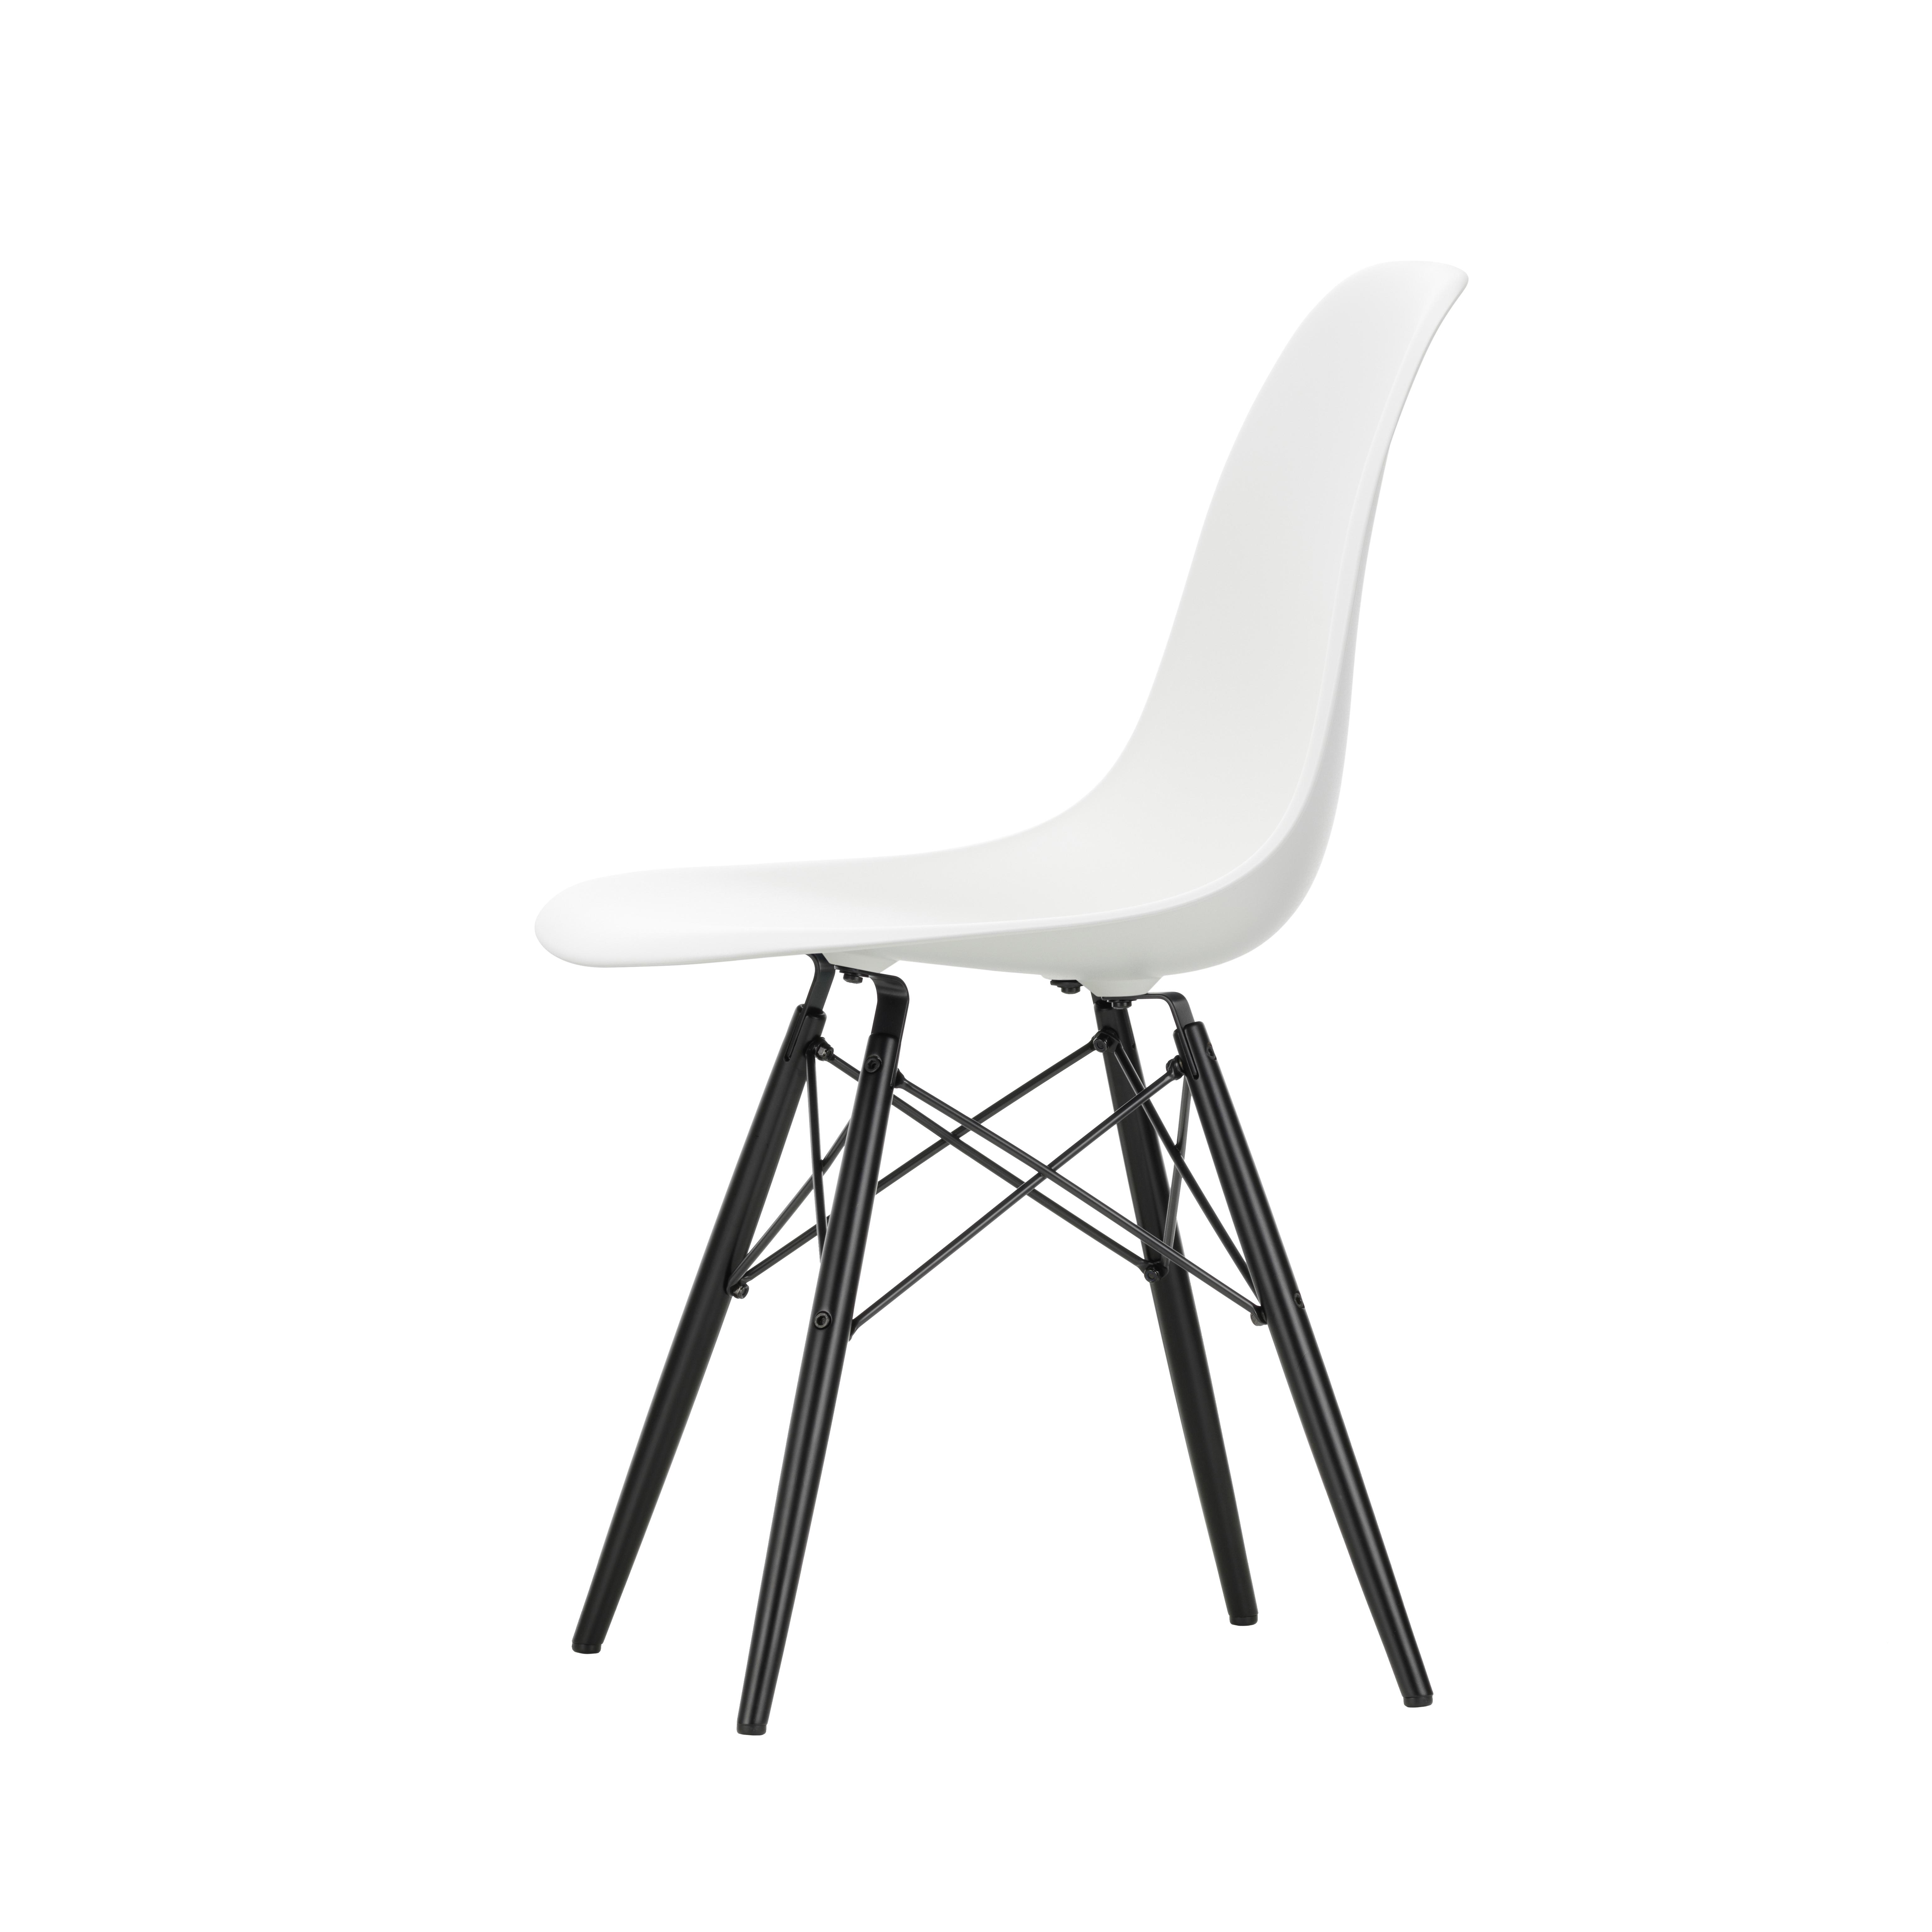 Eames Plastic Chair DSR 42 Green msort base Vitra 2ROM